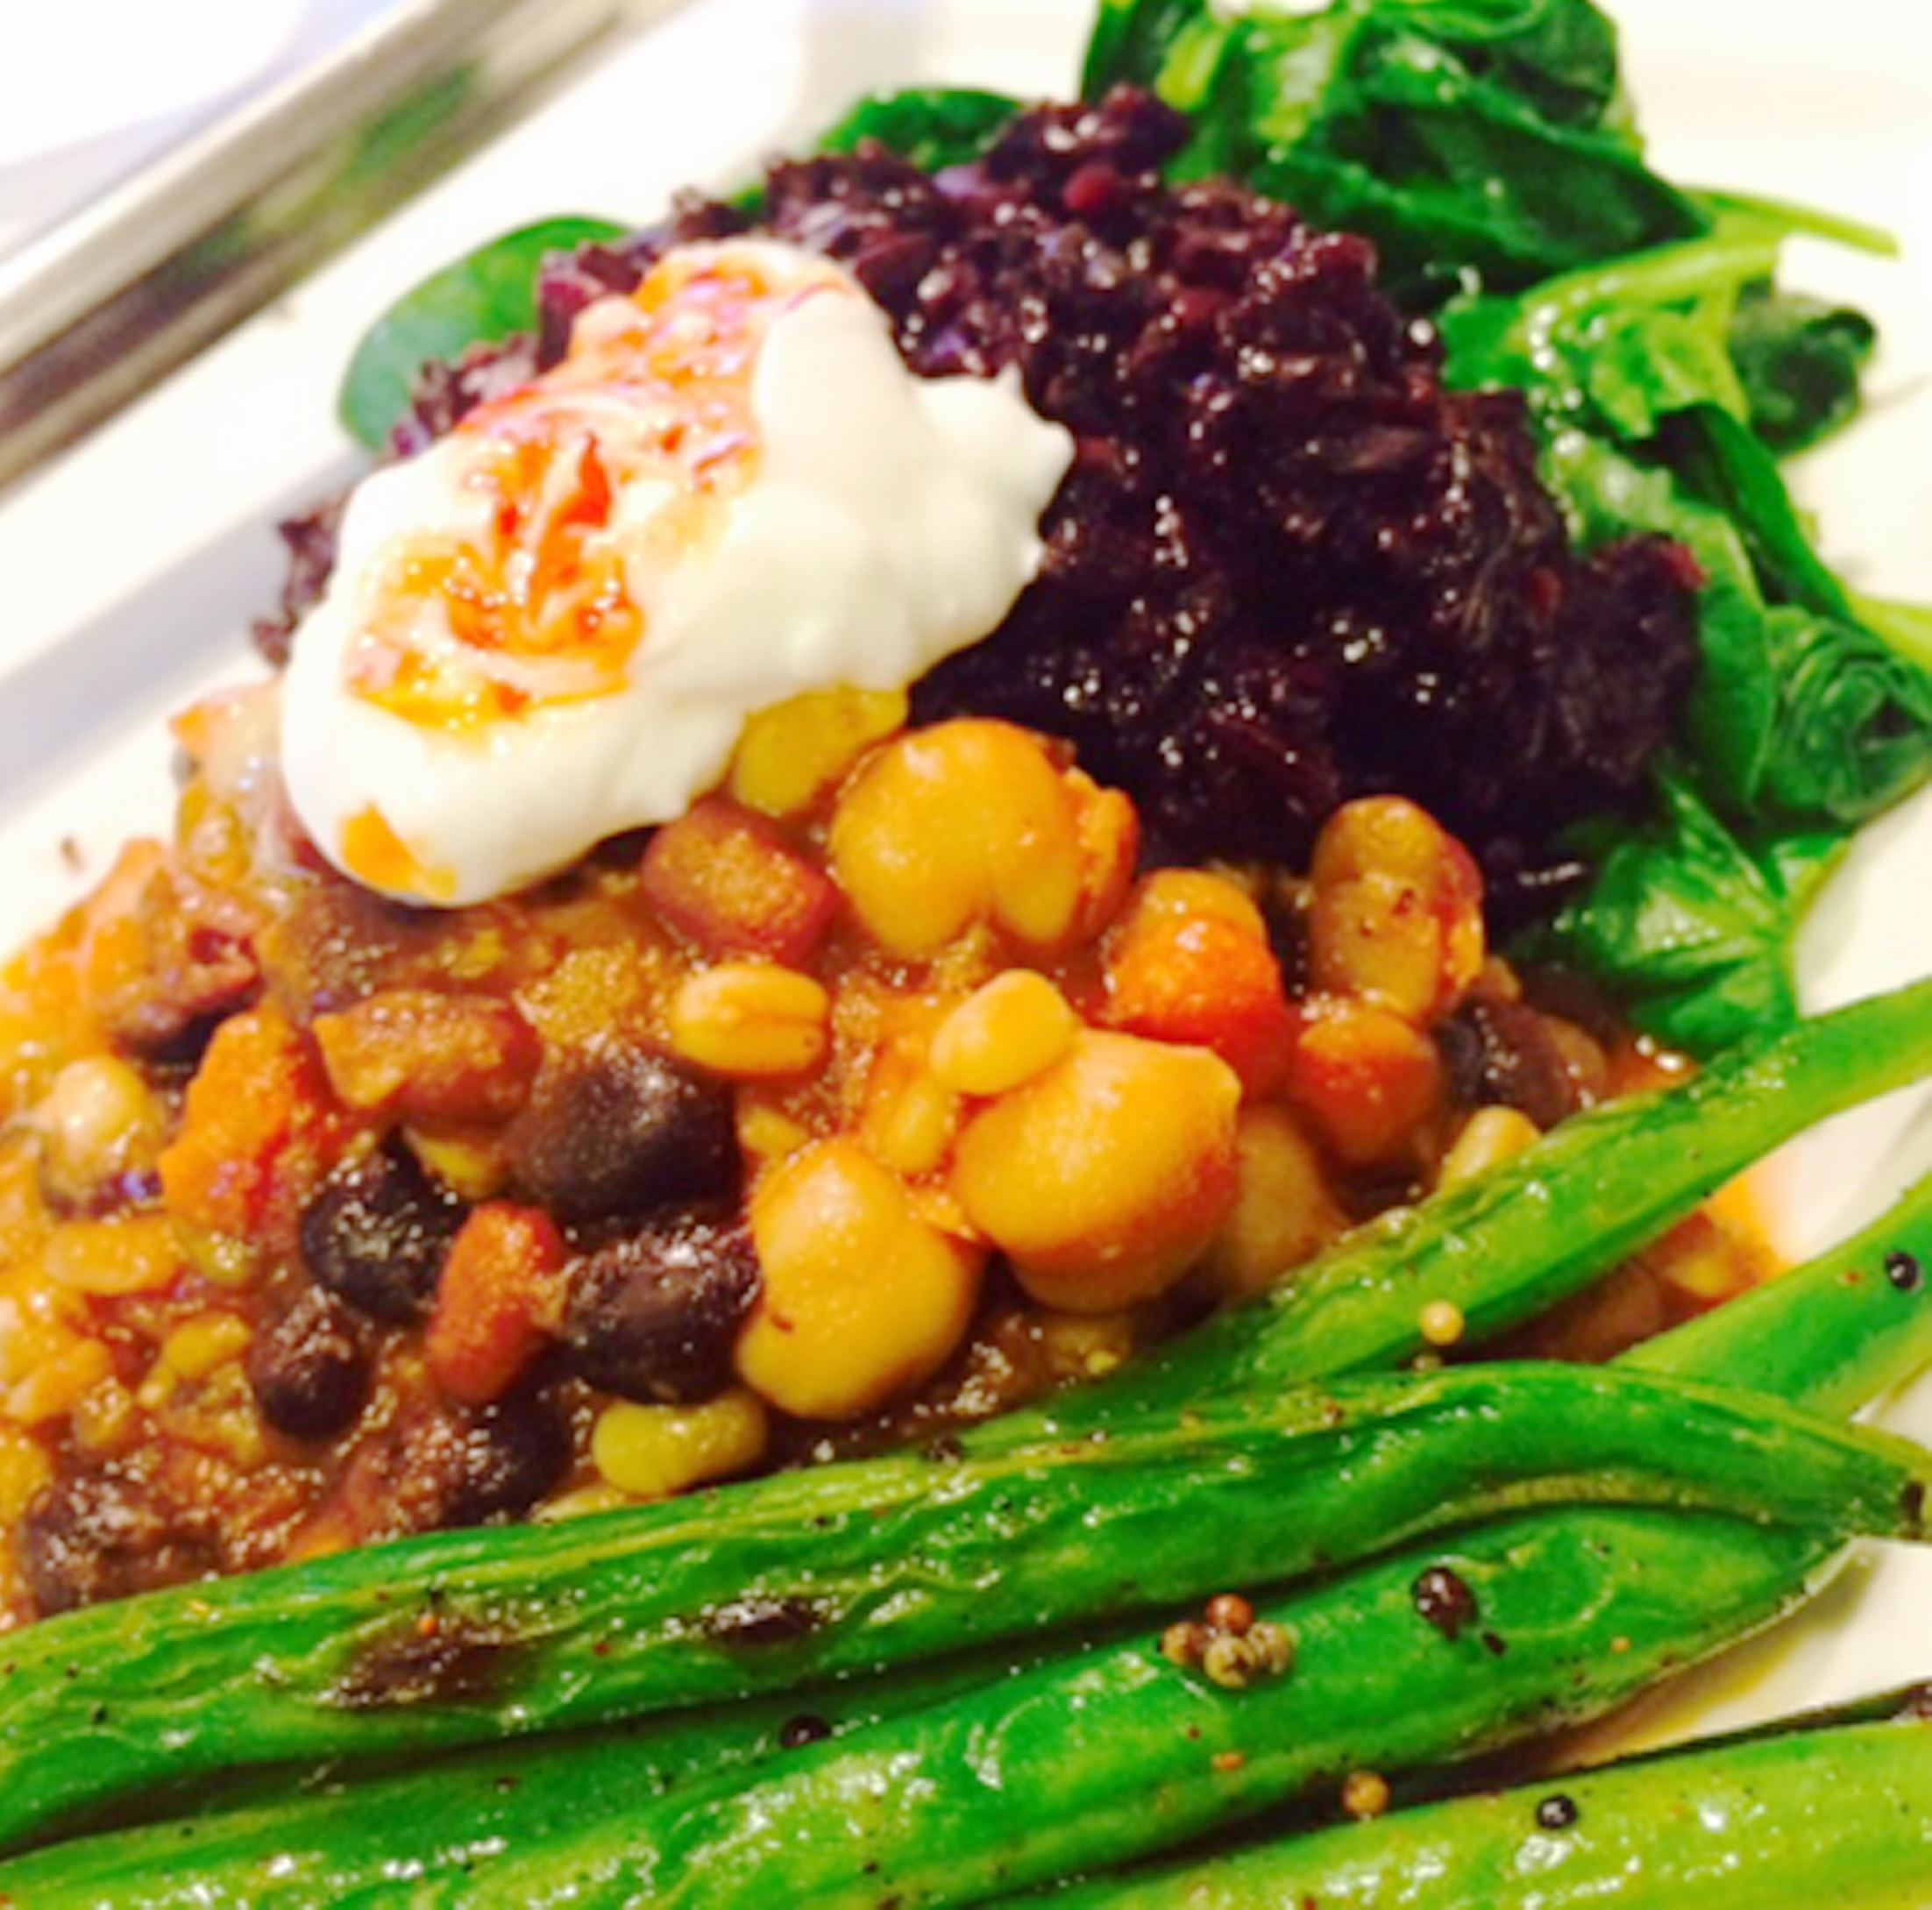 20140327hofoodhook Sprouted Beans and Chickpea Stew, Sticky Black Rice, Charred Green Beans with Blackened Mustard Seeds and Sautéed Spinach.